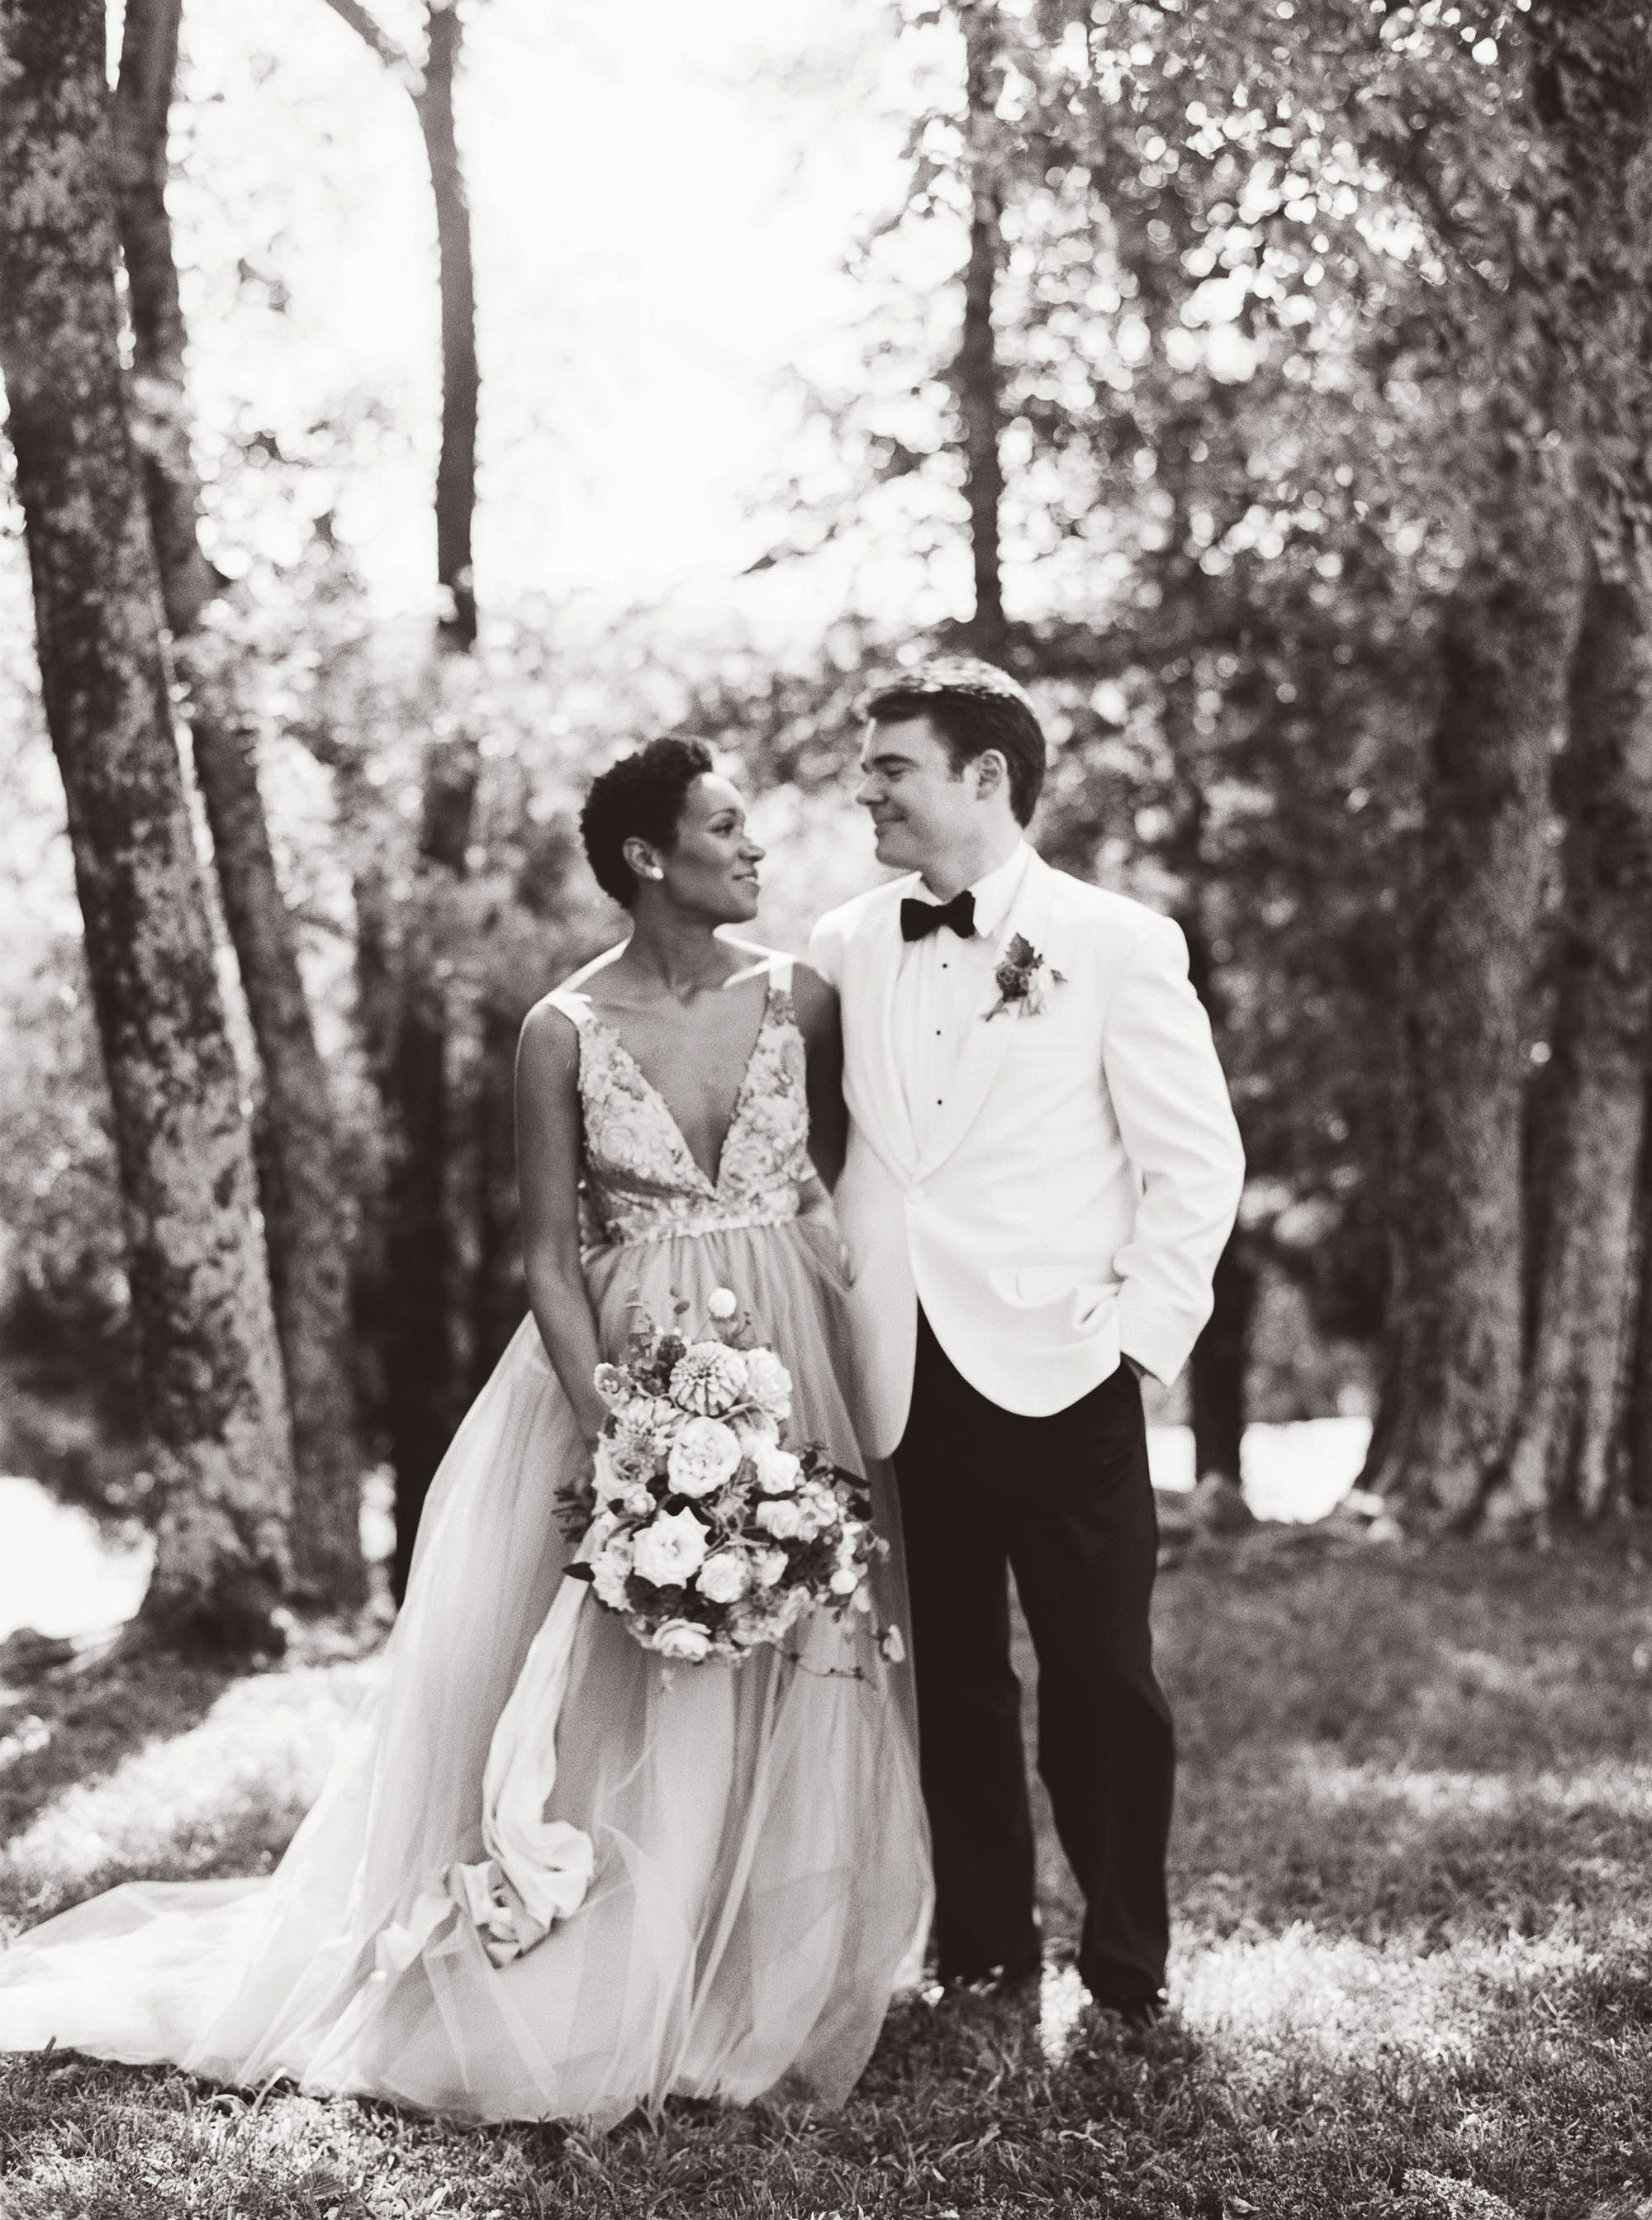 amanda william wedding tennessee couple in woods black and white